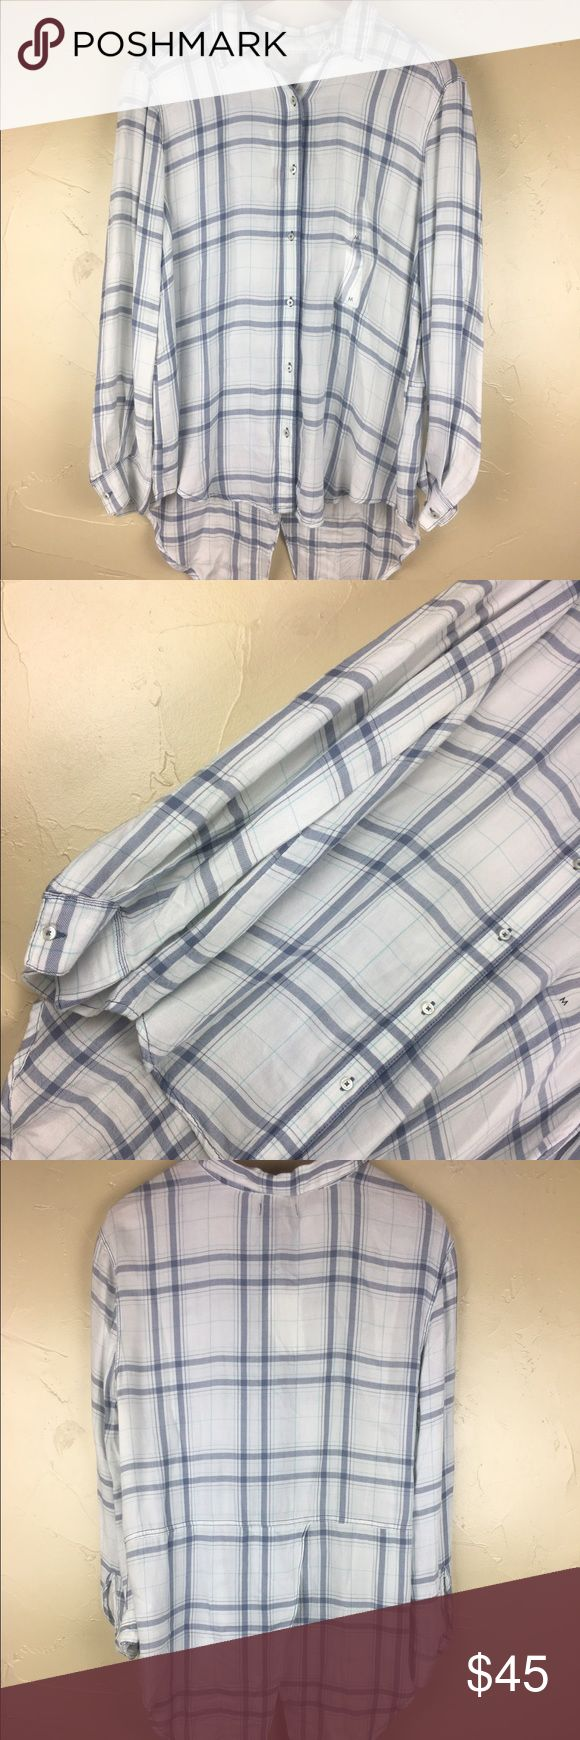 Calvin Klein Jeans button down shirt Size M NWT Calvin Klein Jeans button down size Medium with beautiful back low high type of shirt. See pictures for more details Calvin Klein Jeans Tops Button Down Shirts